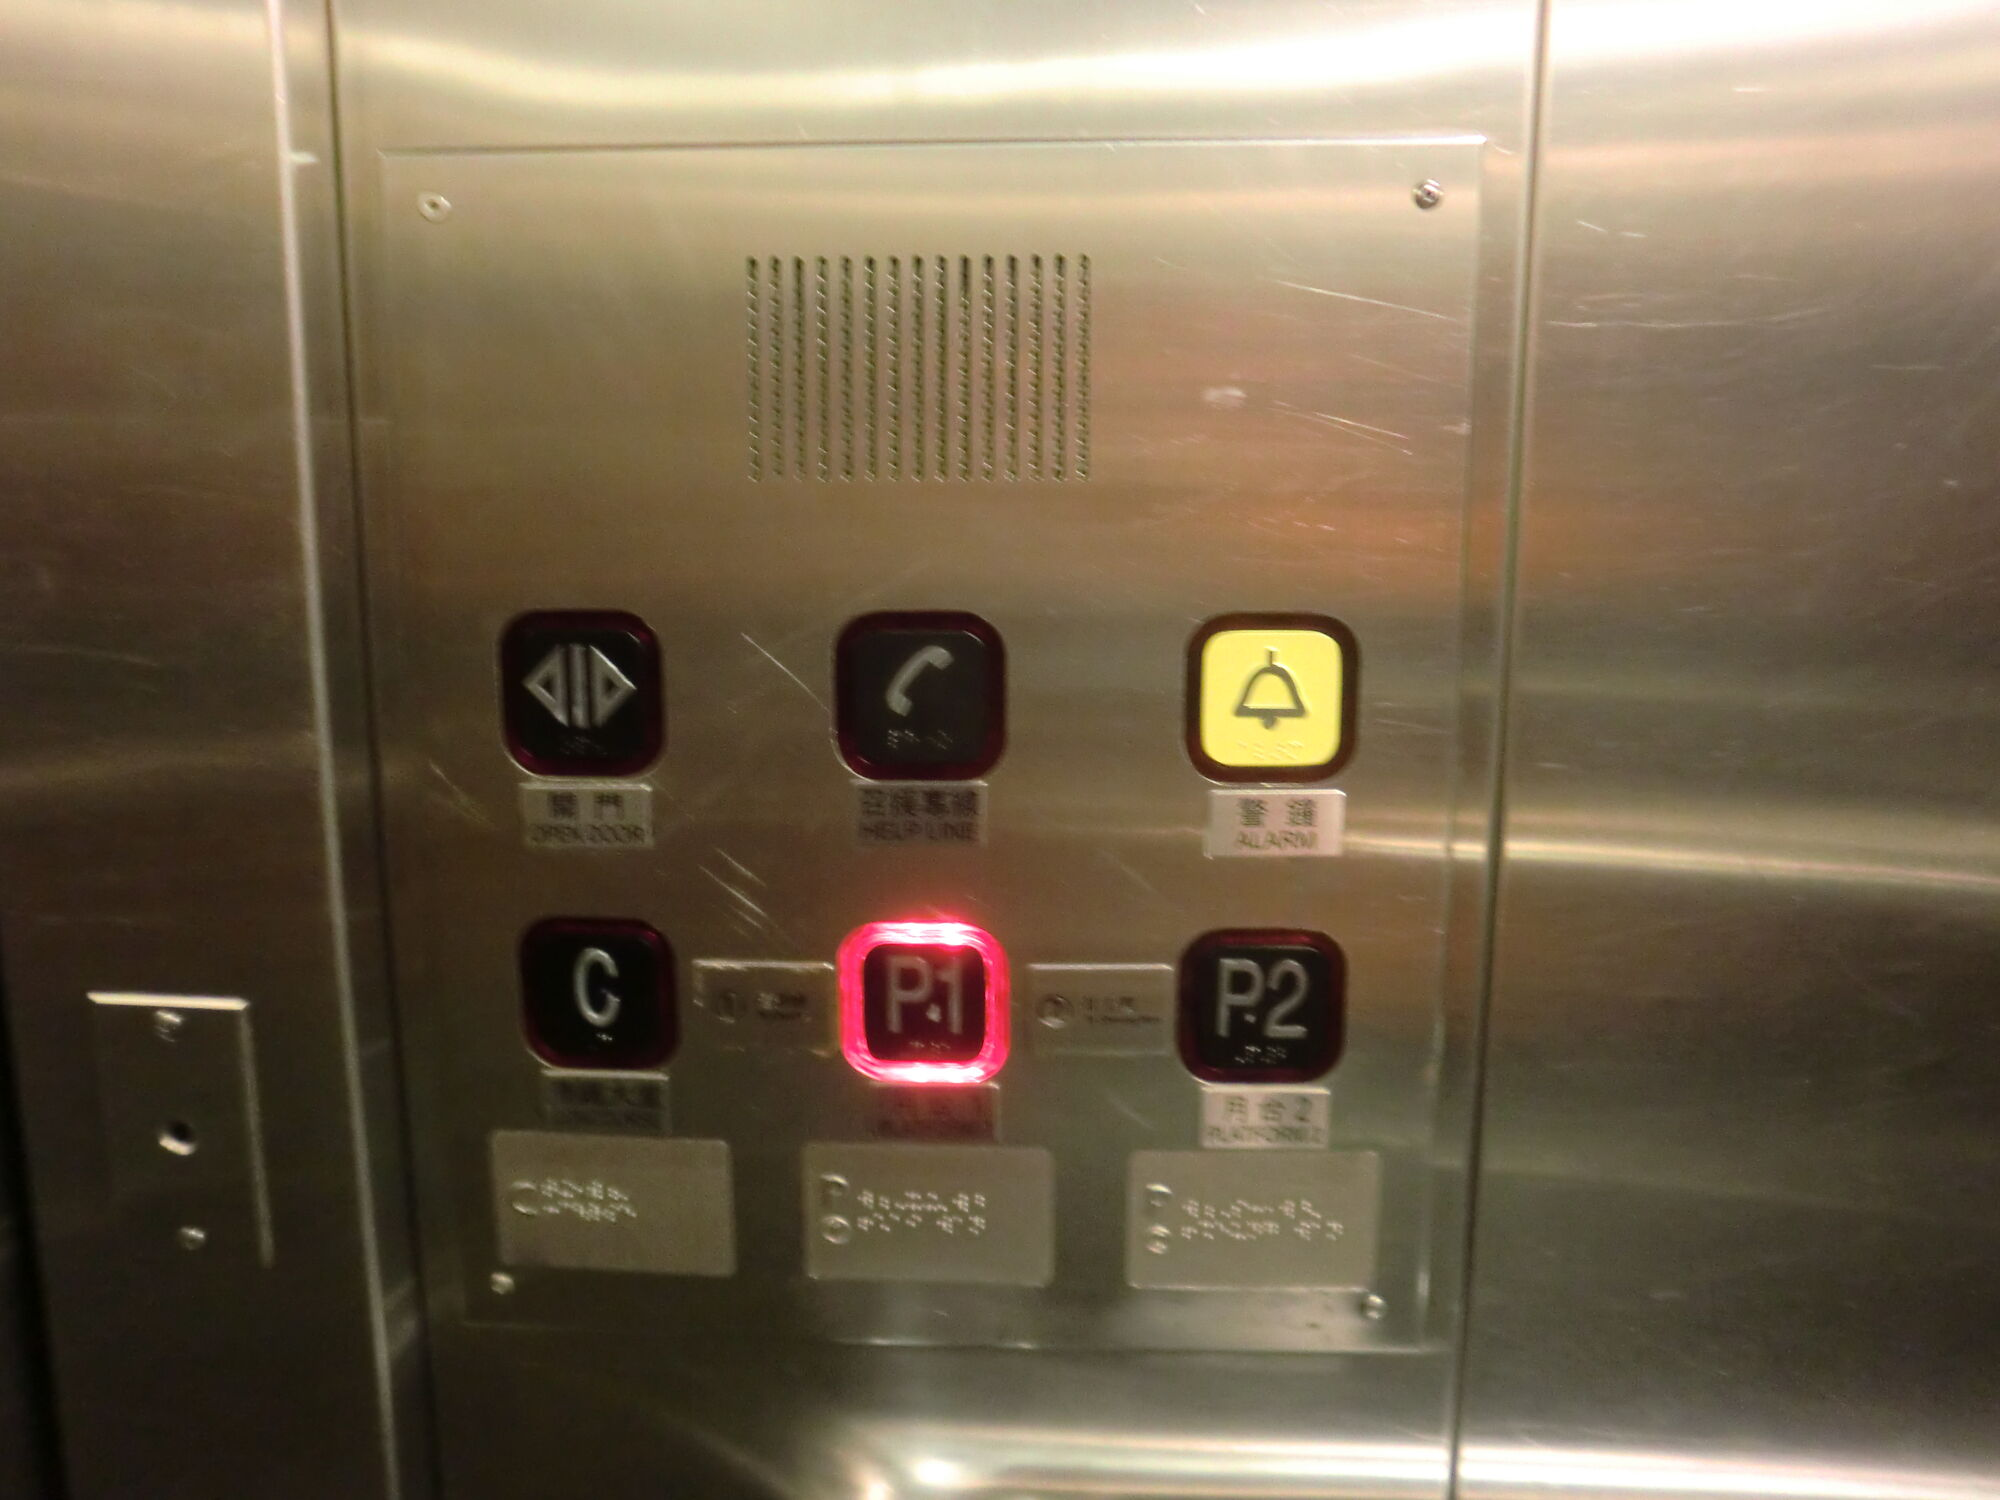 Install a Phone Inside the Elevator